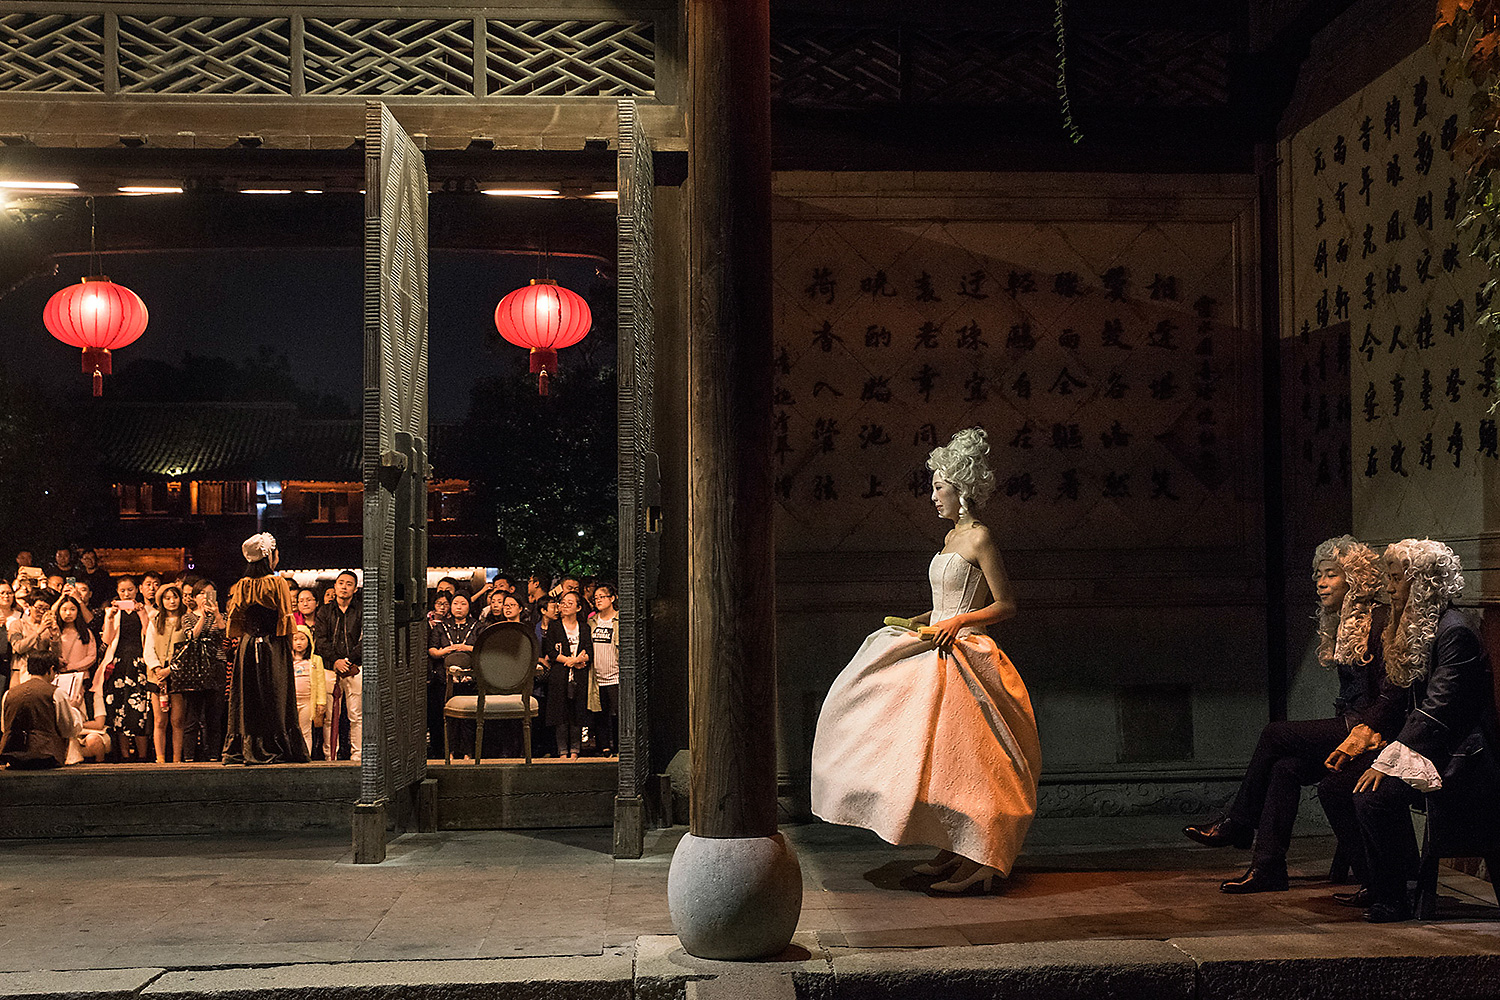 "In a renovated building in Wuzhen, a historic town in Zhejiang province, actors wait backstage during a staging of Moliere's comedy ""The Learned Ladies."" The troupe performed during a city theater festival. Photo by Gilles Sabrié @gillessabrie"